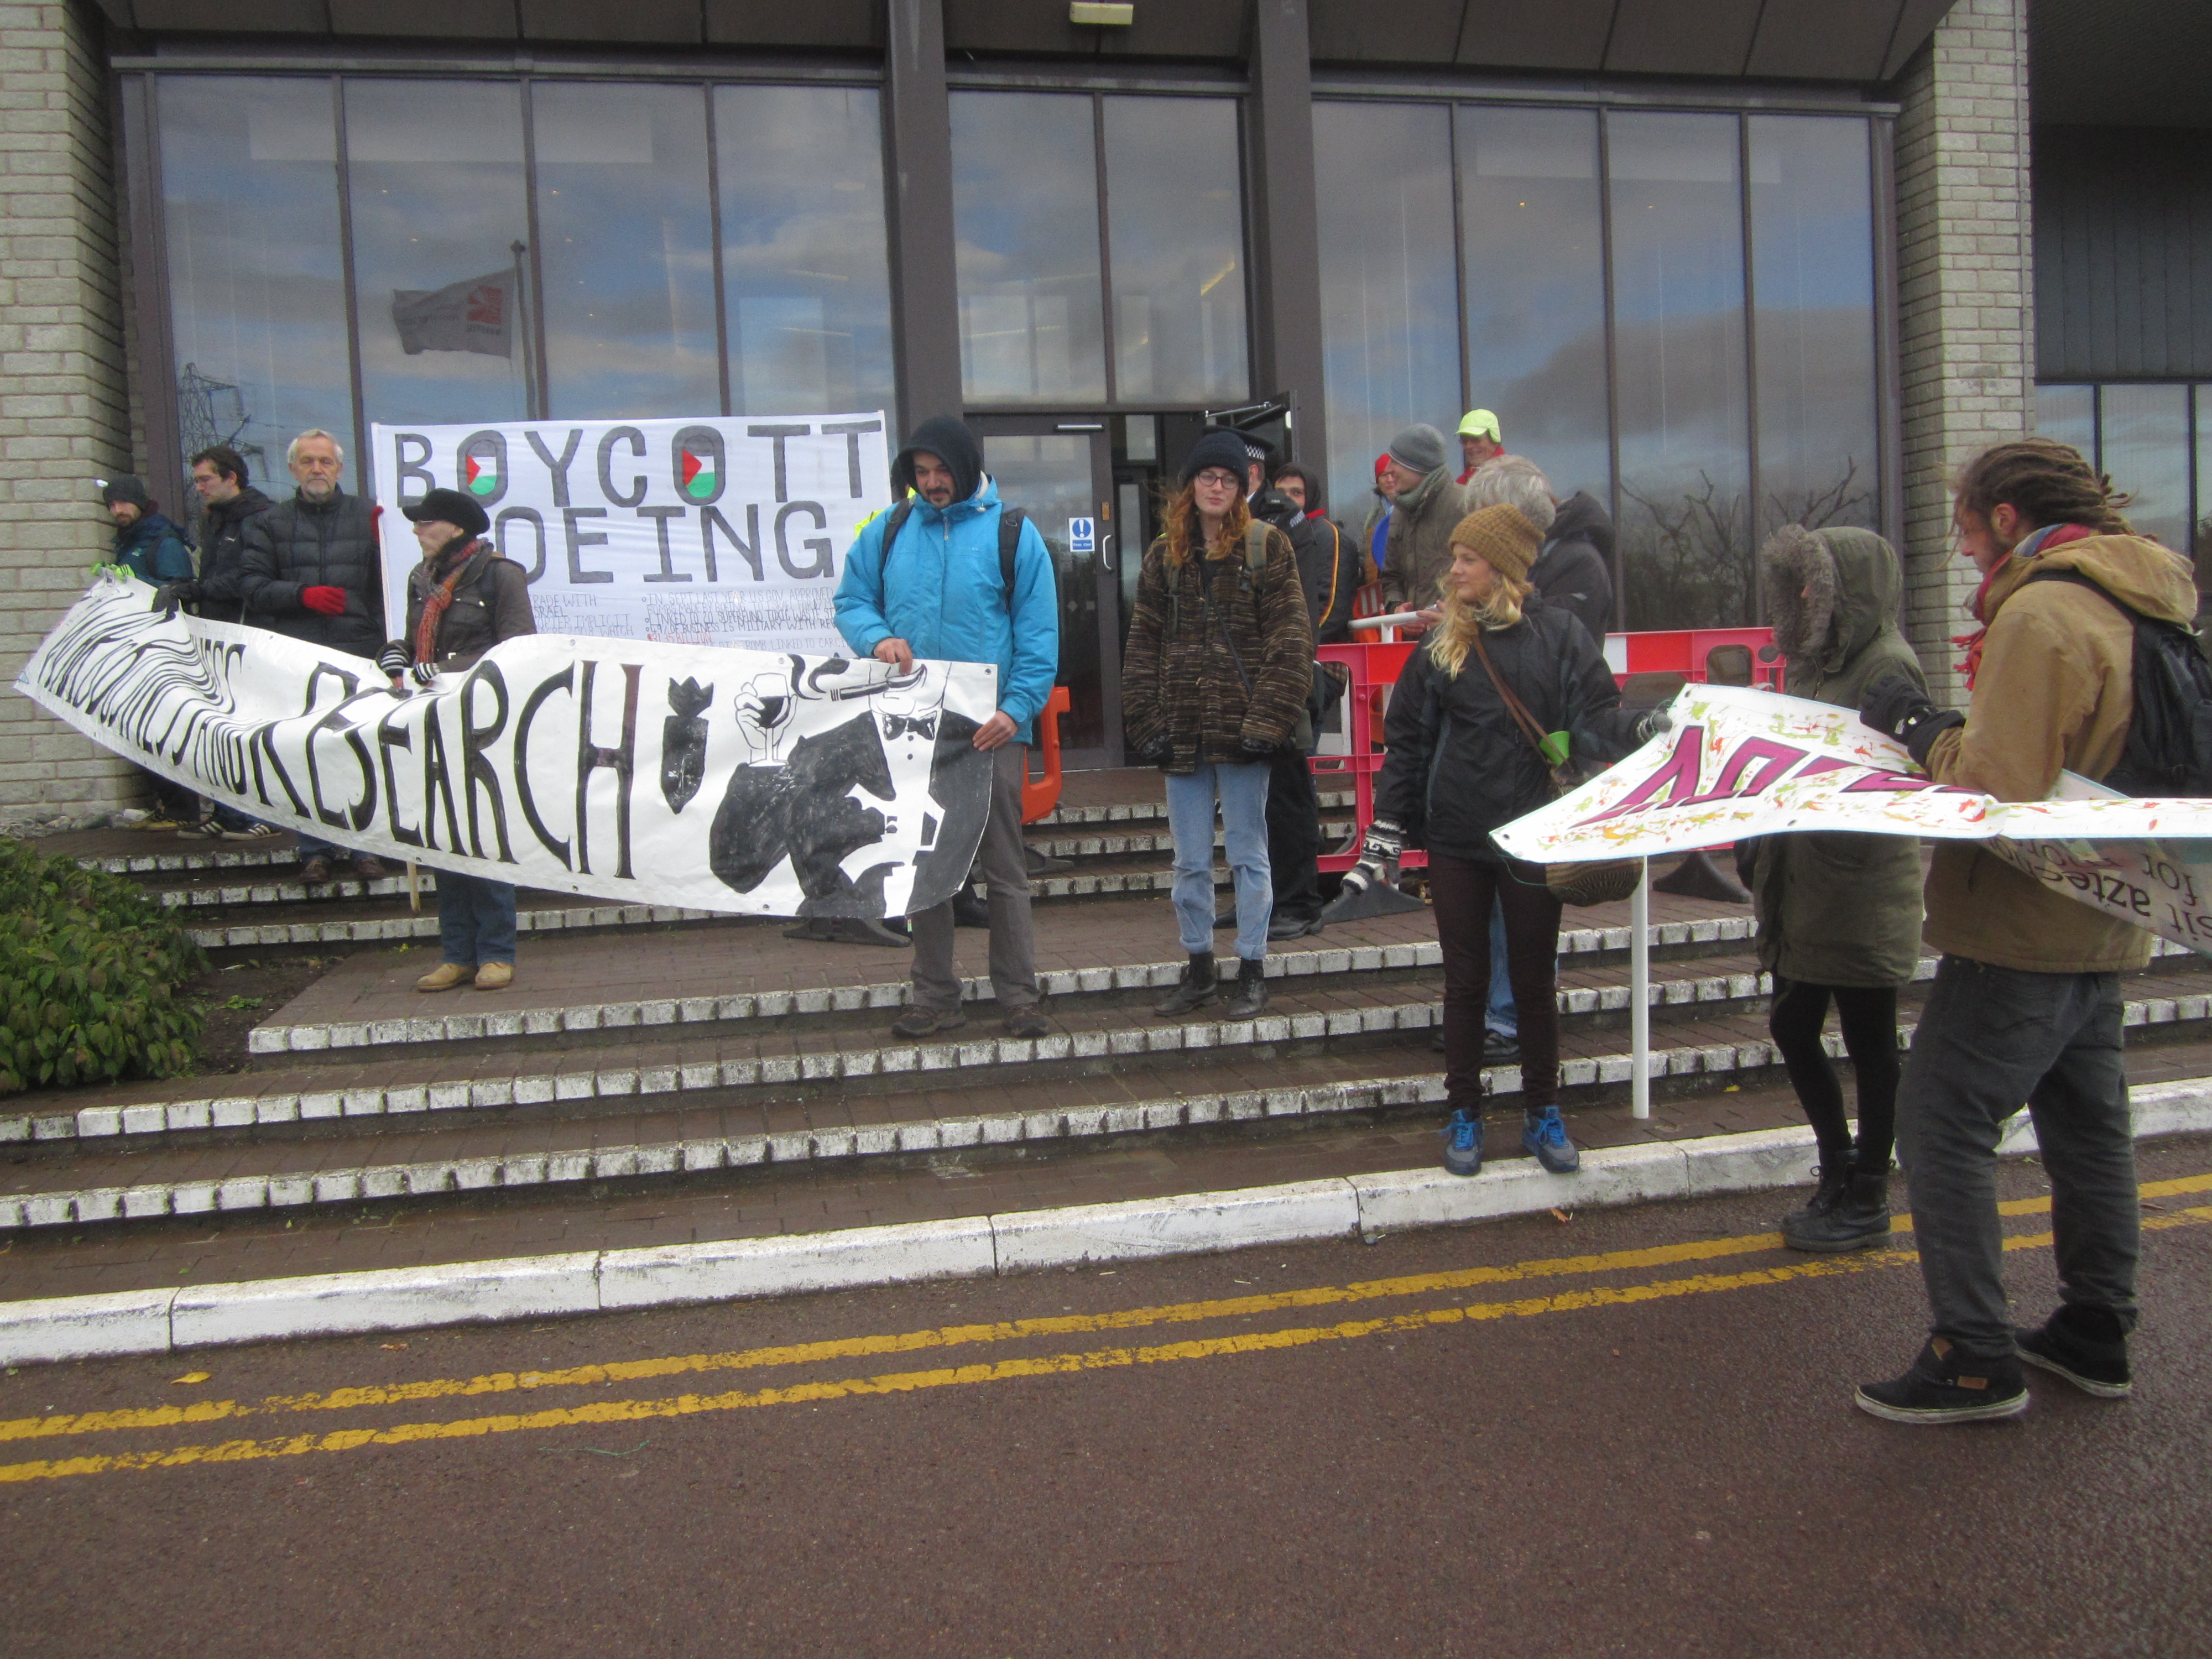 group of protesters with banners calling for boycott of the event